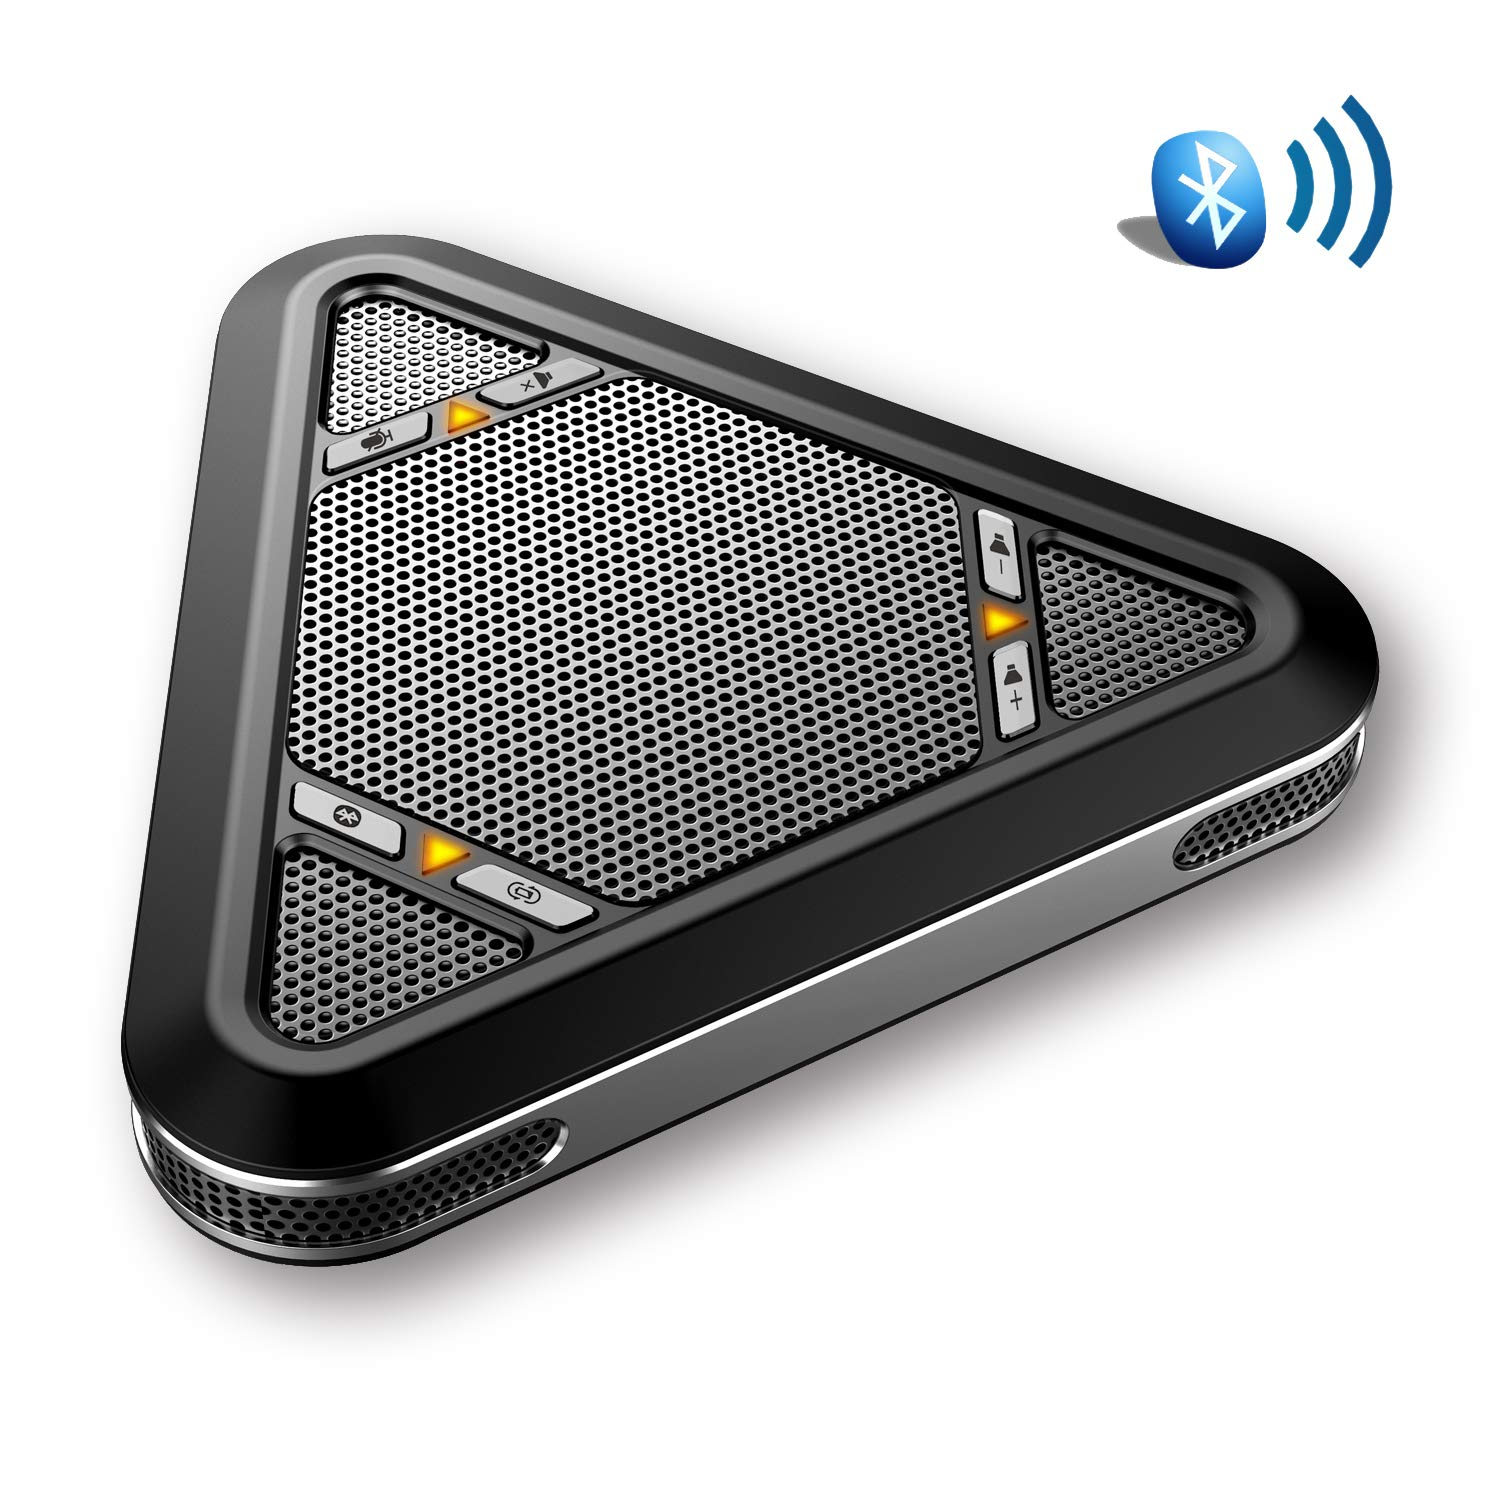 Tenveo Wireless Bluetooth Speaker for Softphone and Mobile Phone, Bluetooth Speakerphone for 5-8 People Business Conference Phone by Tenveo